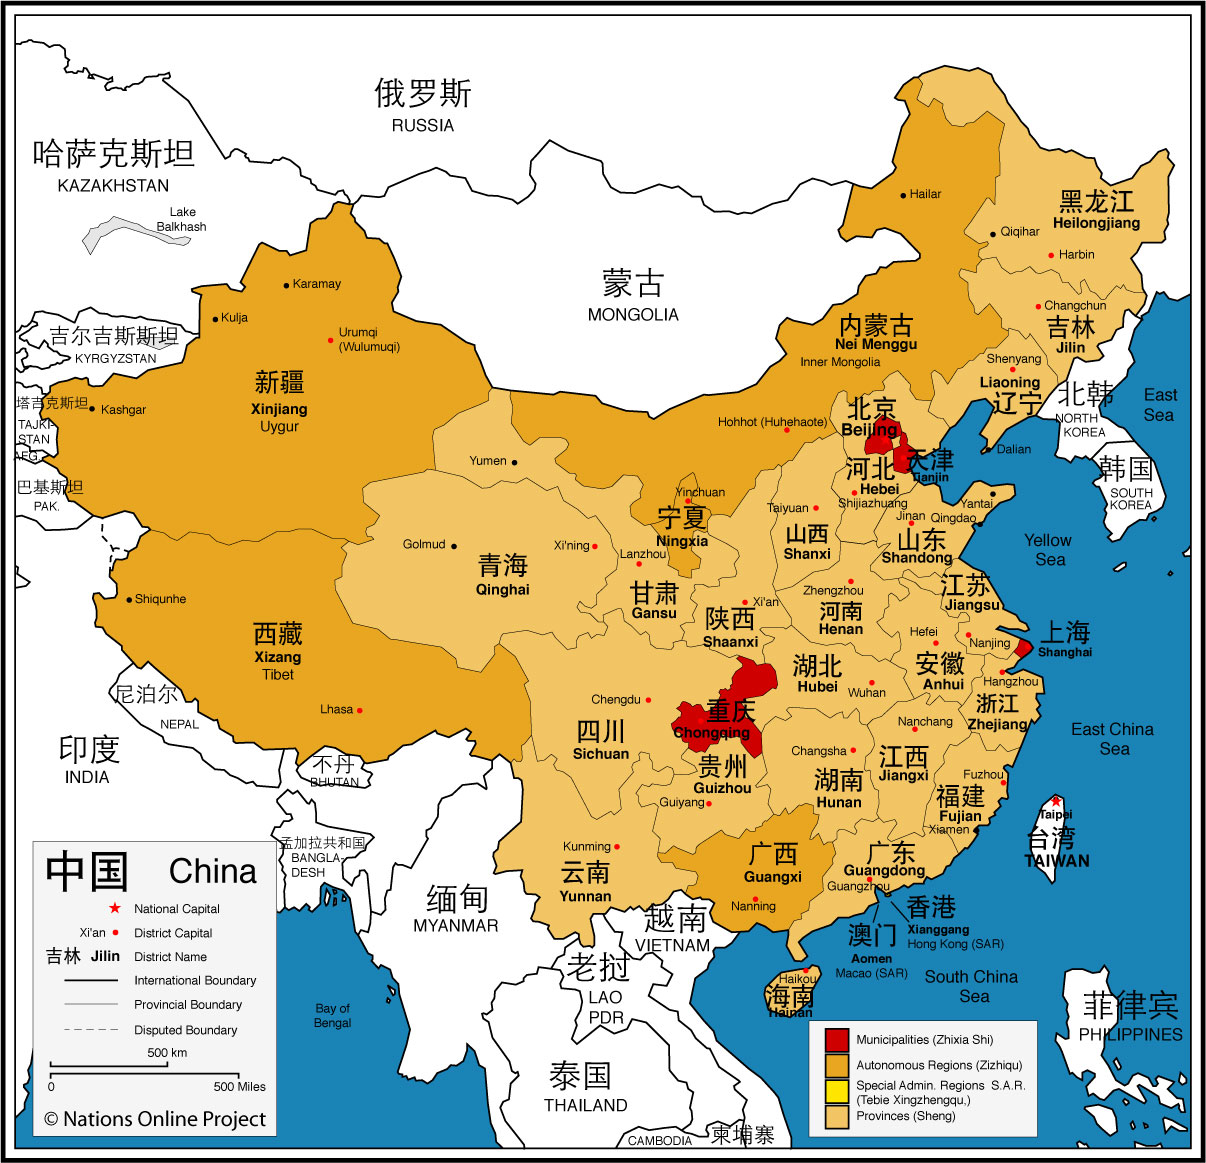 Administrative Map of China - Nations Online Project